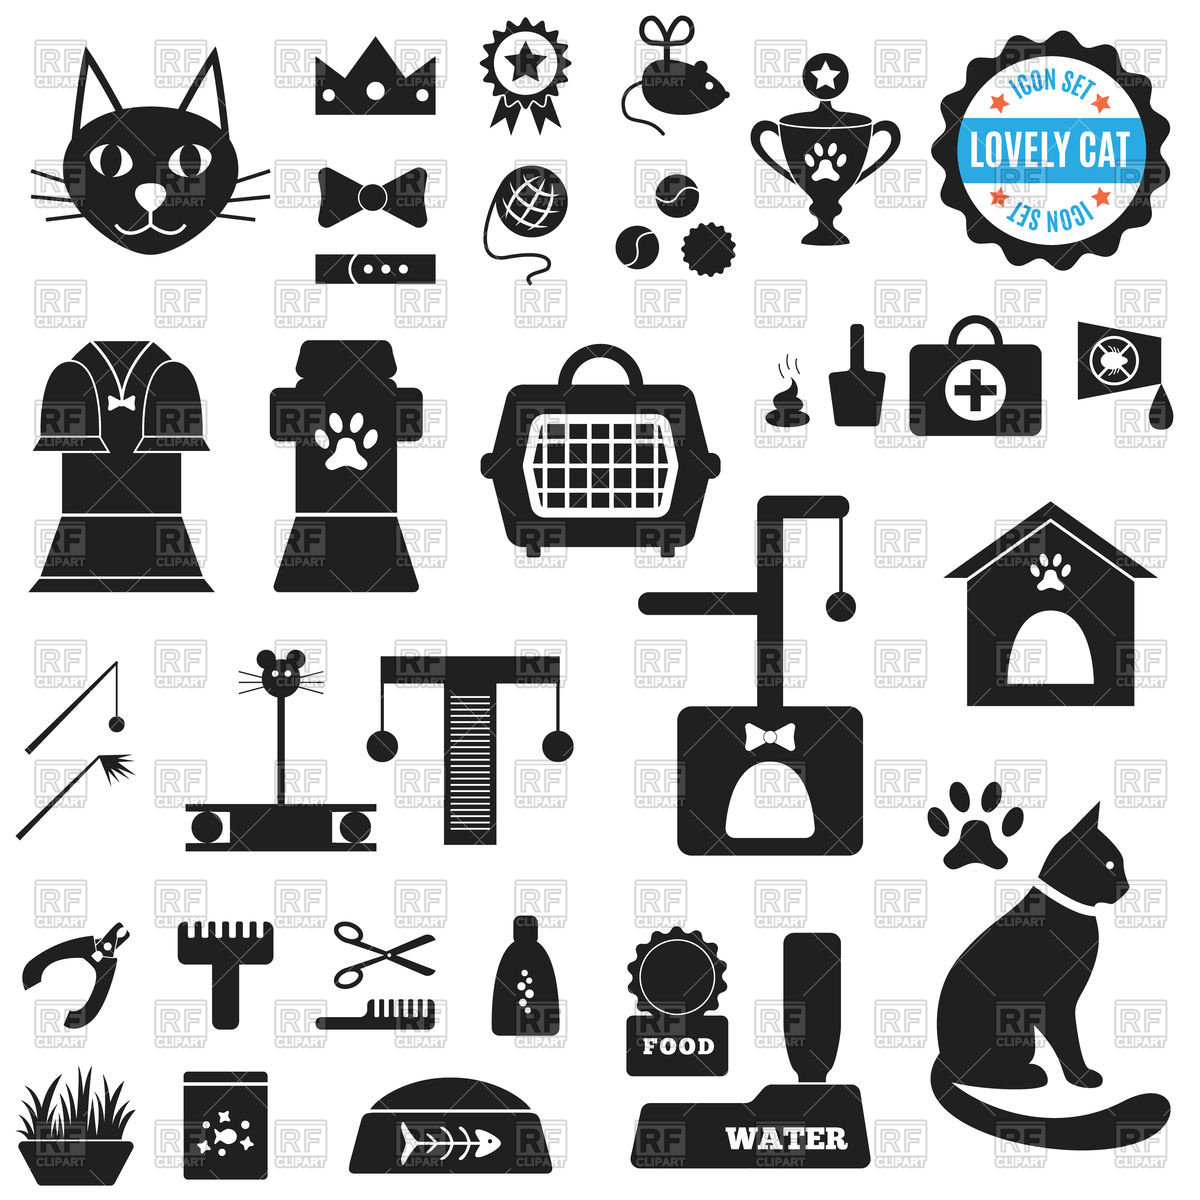 Set of icons for cat food, house, cleaning, toys, clothing.